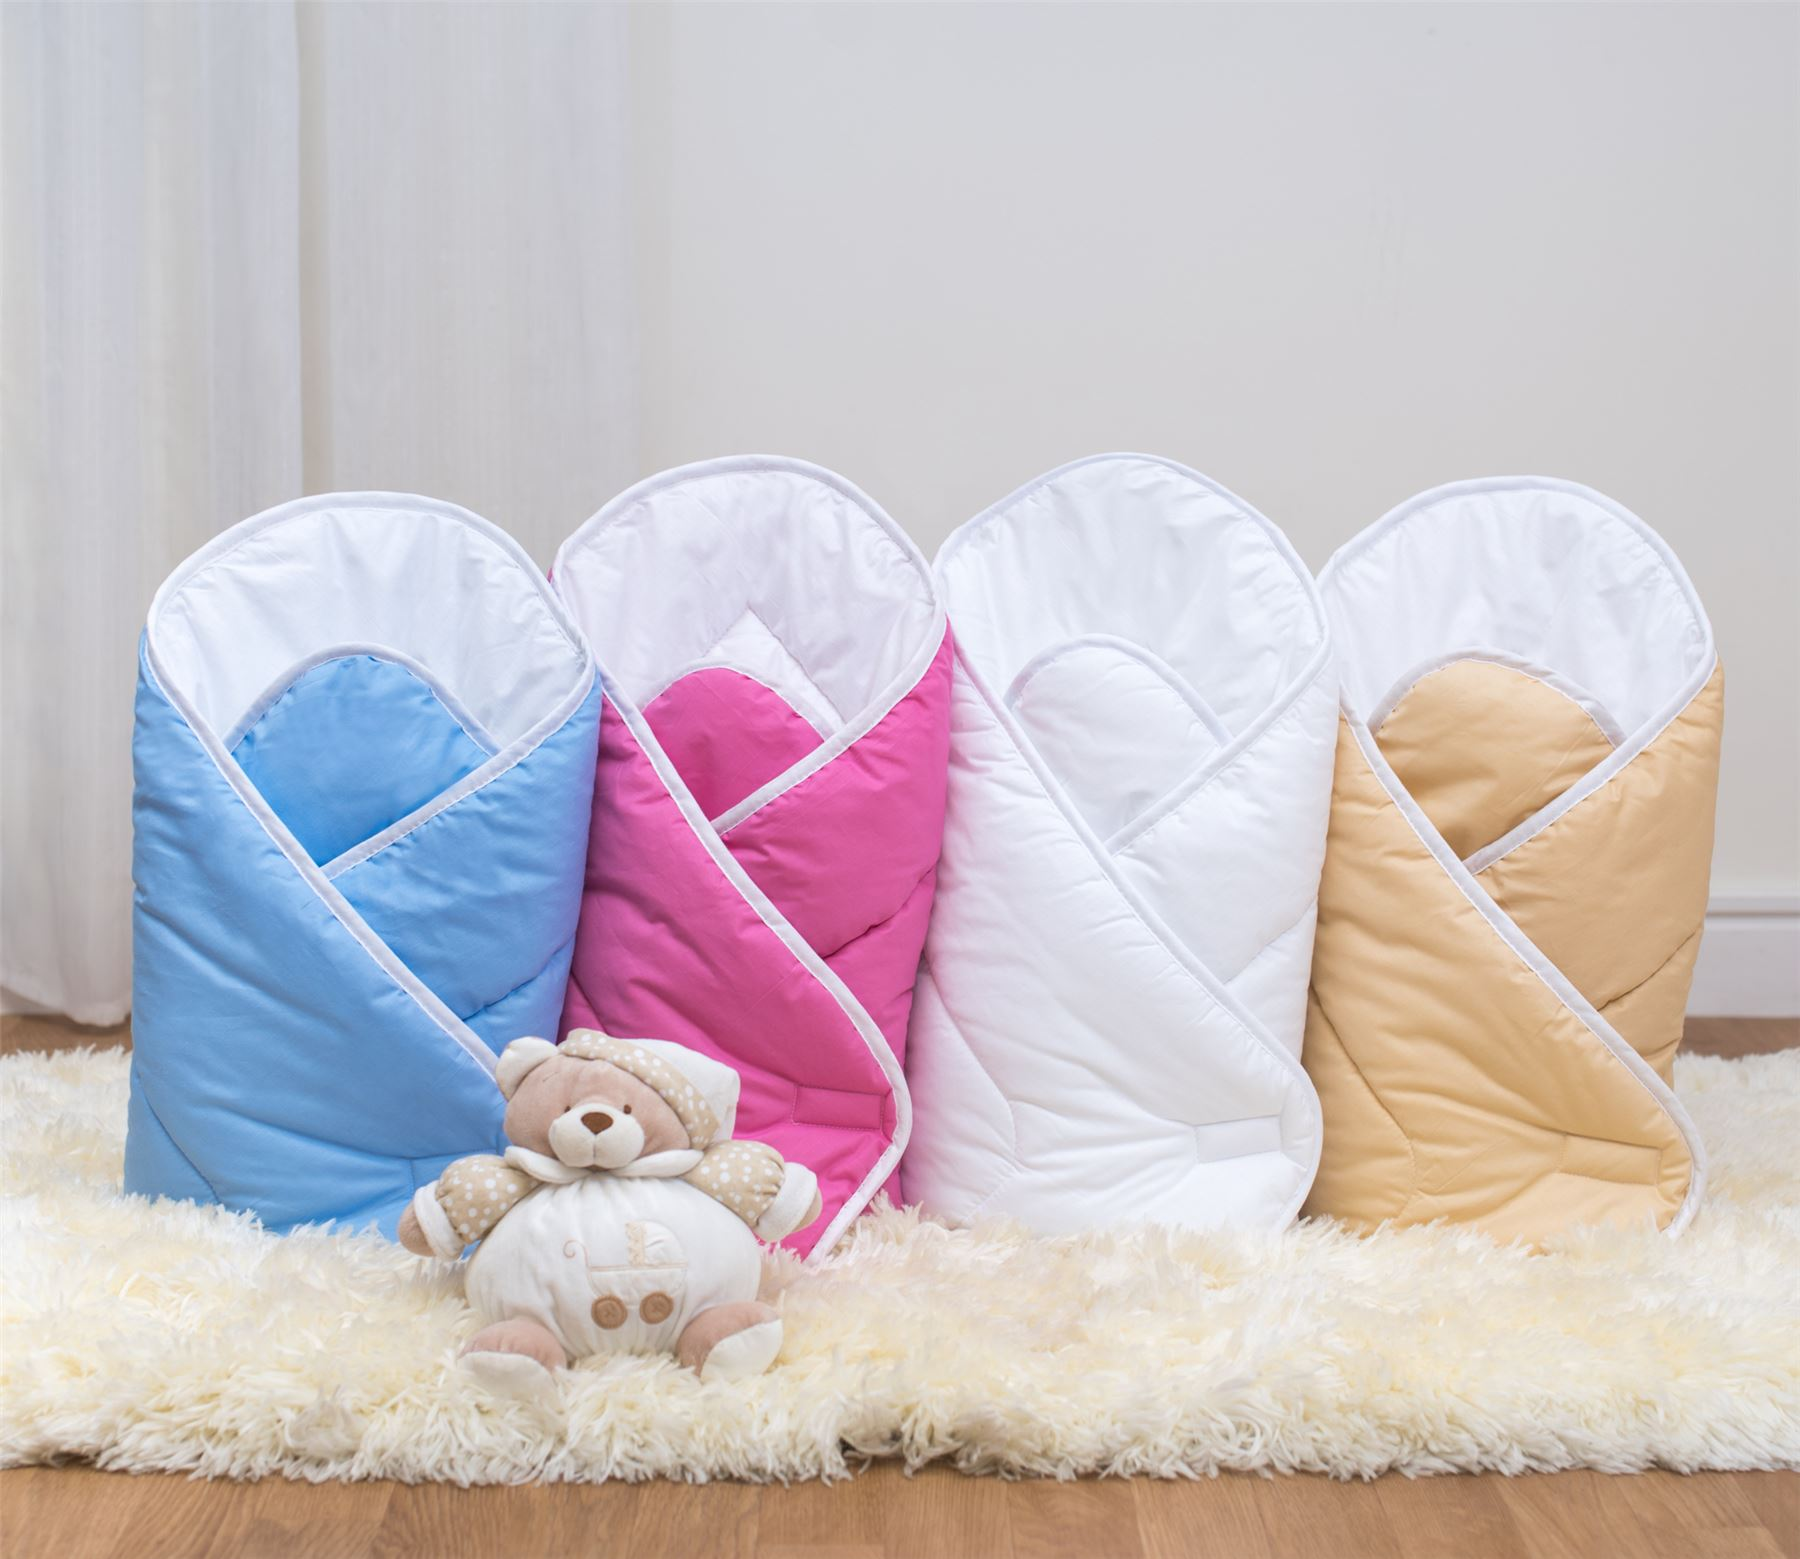 Infant Swaddling Newborn Blanket Luxury Soft Baby Swaddle Wrap Quilt Plain